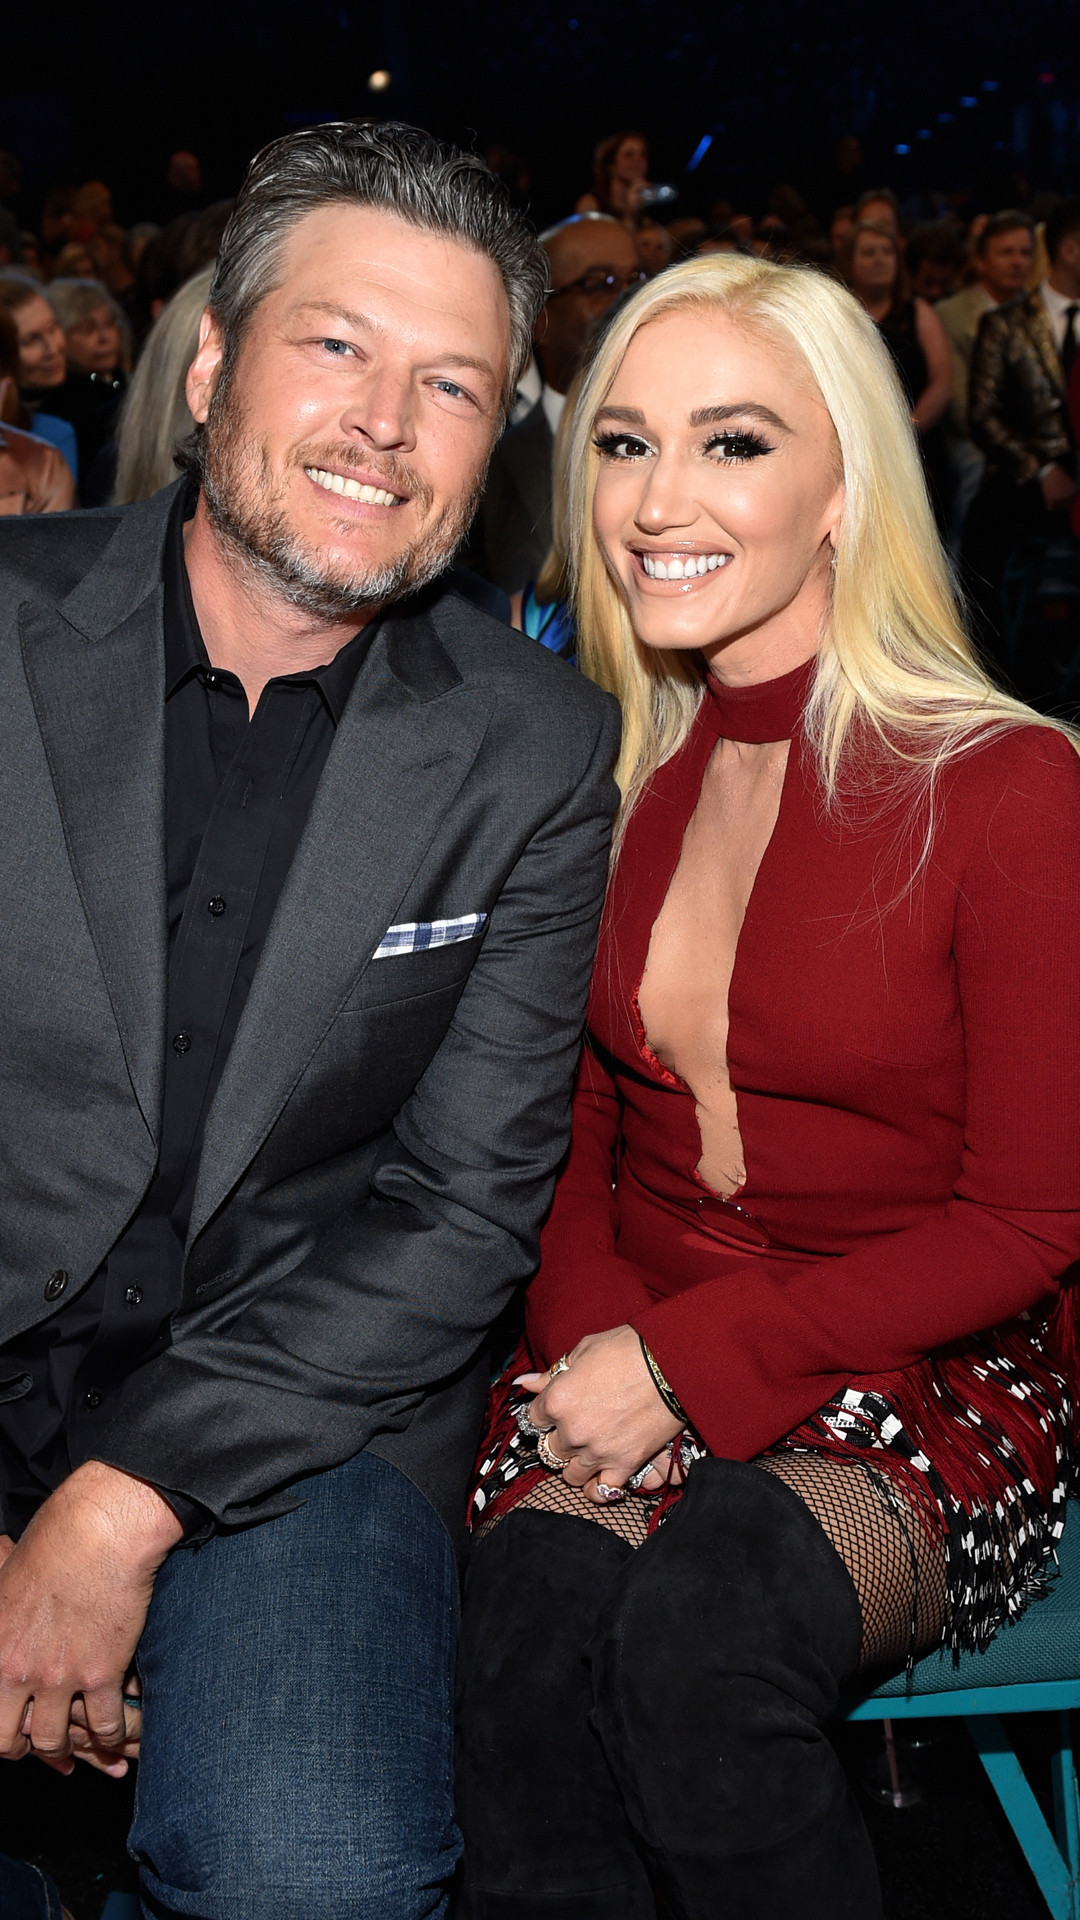 Blake Shelton with girlfriend Gwen Stefani